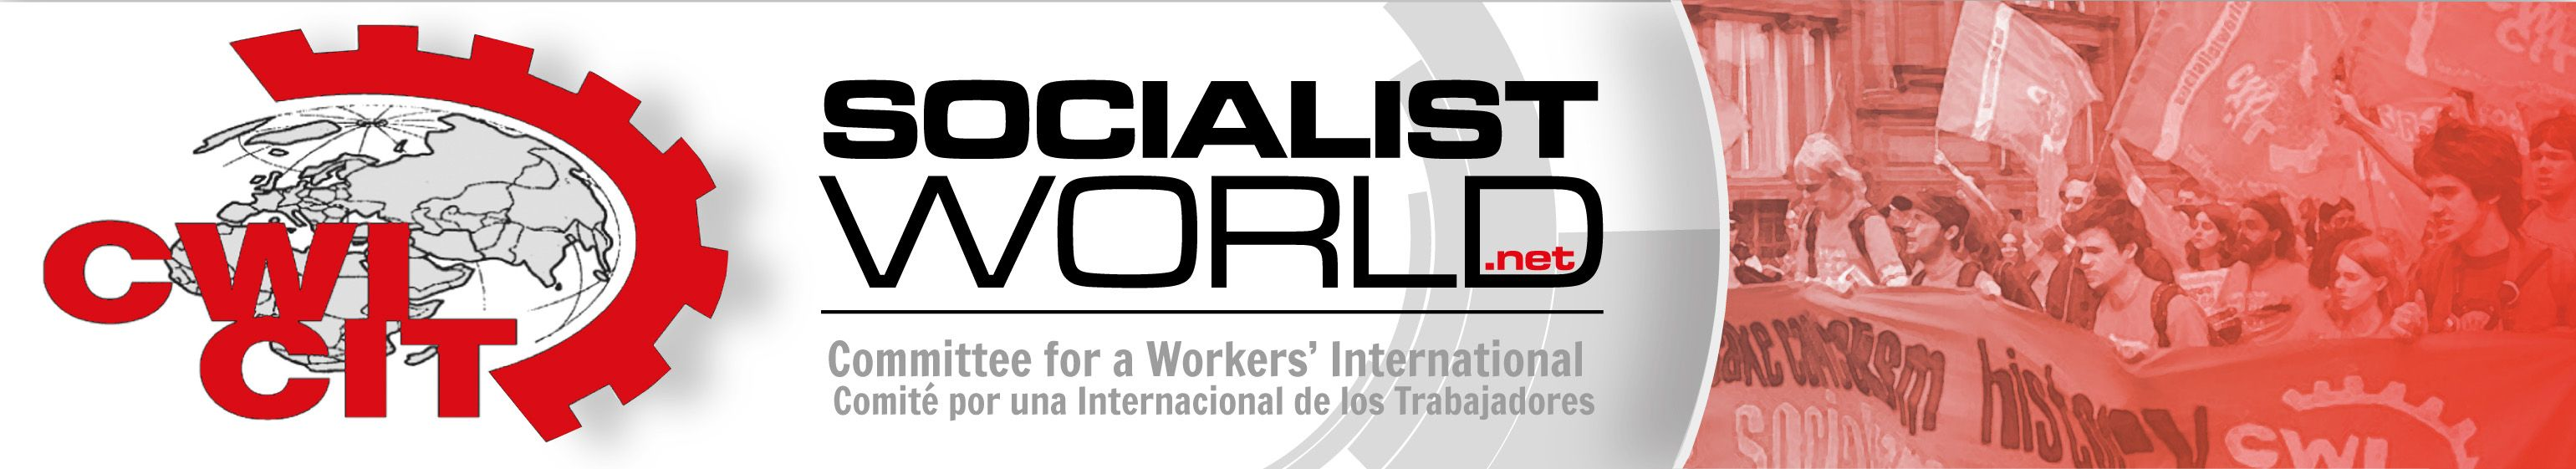 Committee for a Workers' International (CWI) News and analysis from the CWI